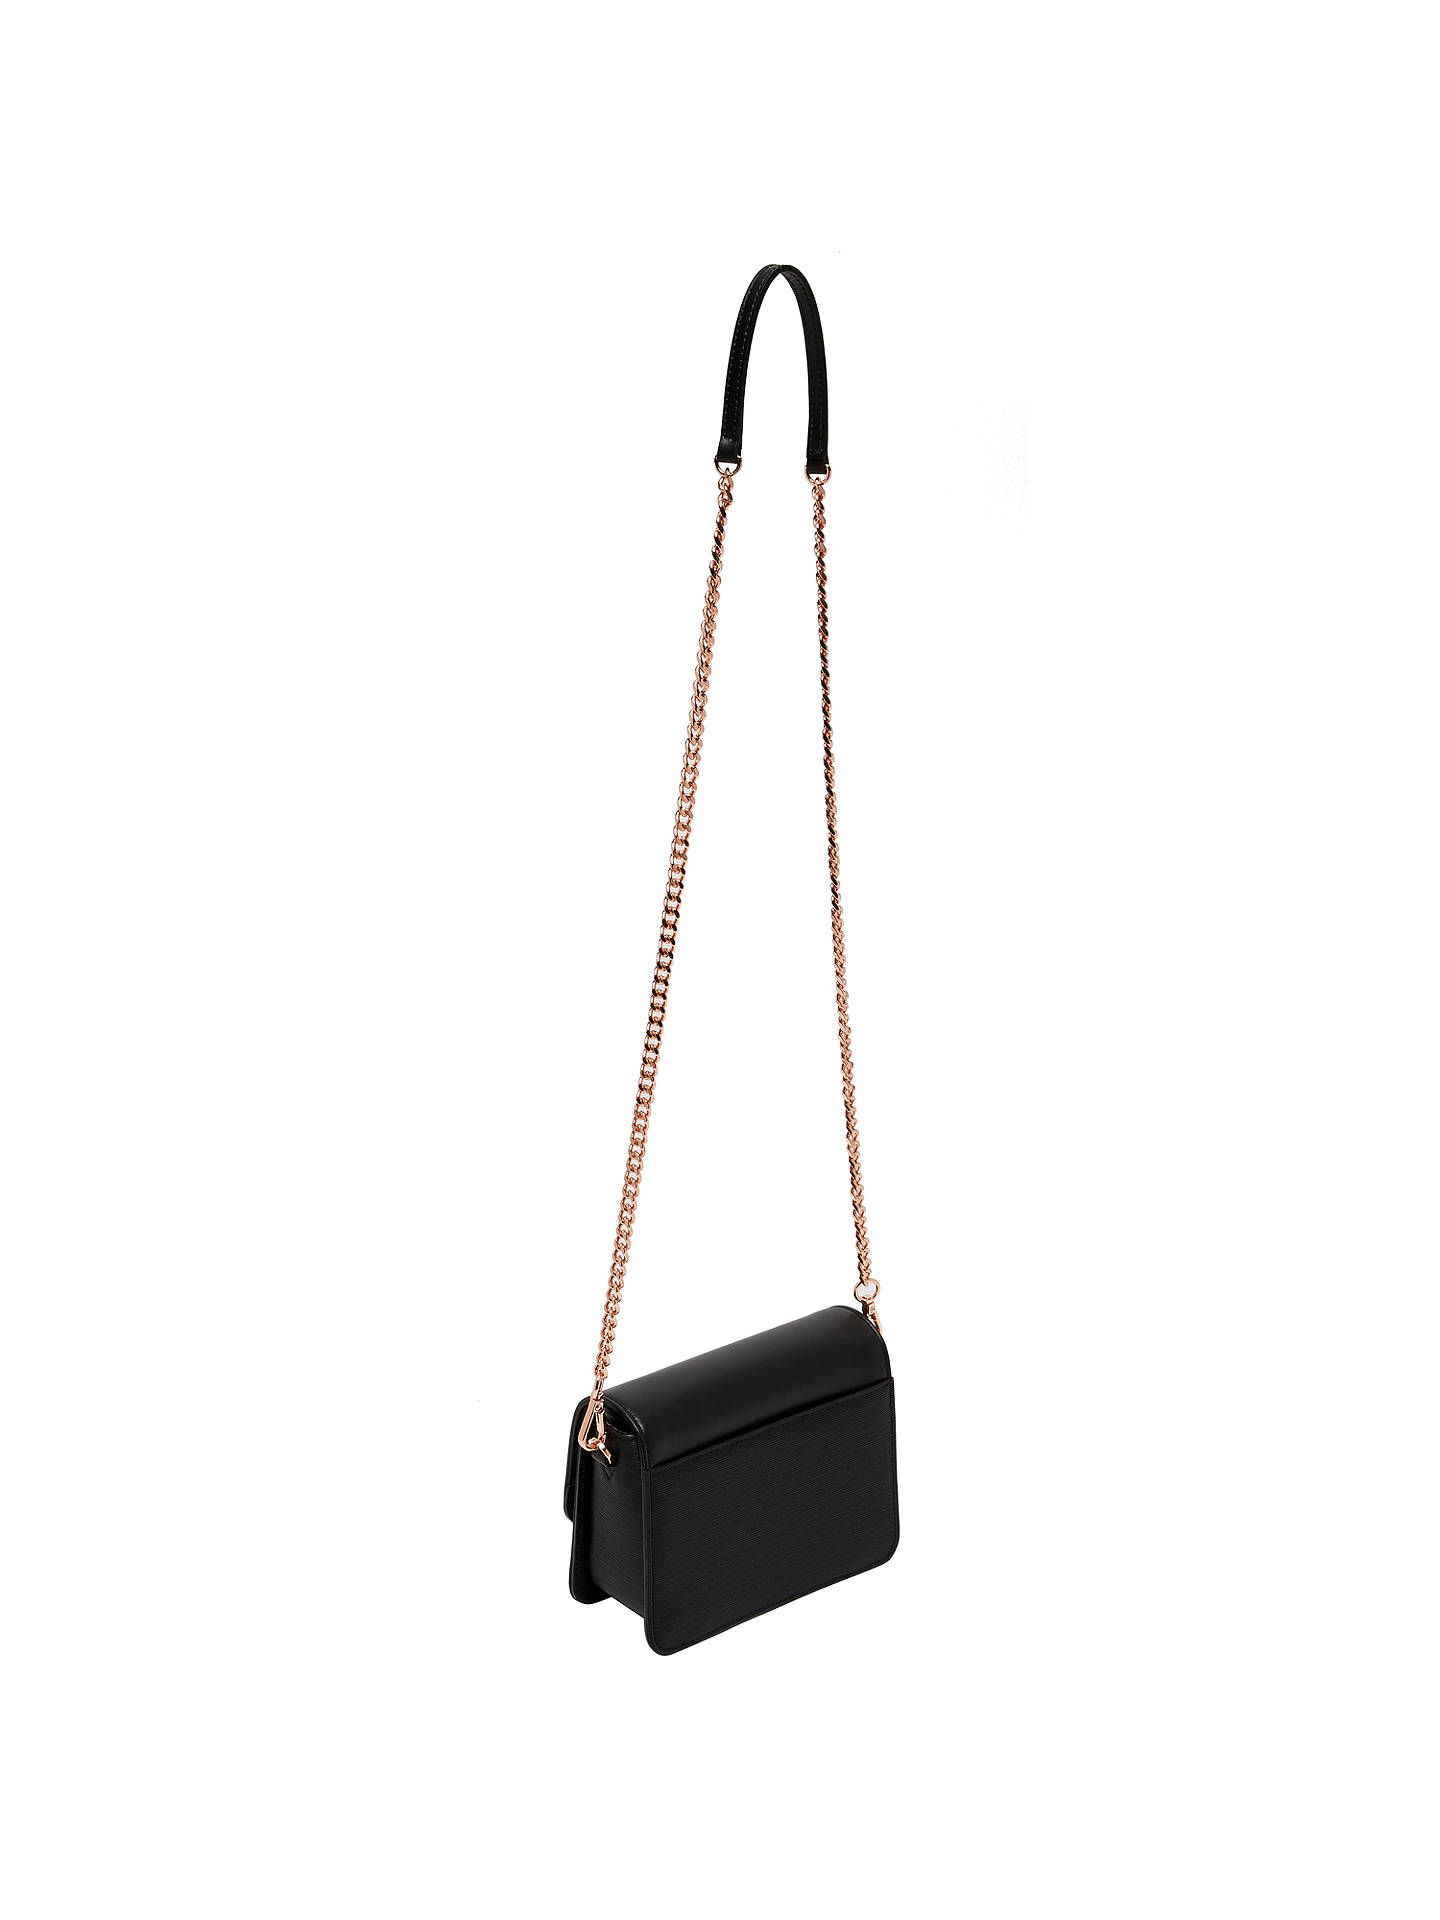 f9b2c8e6db8a9 ... Buy Ted Baker Bow Detail Leather Cross Body Bag